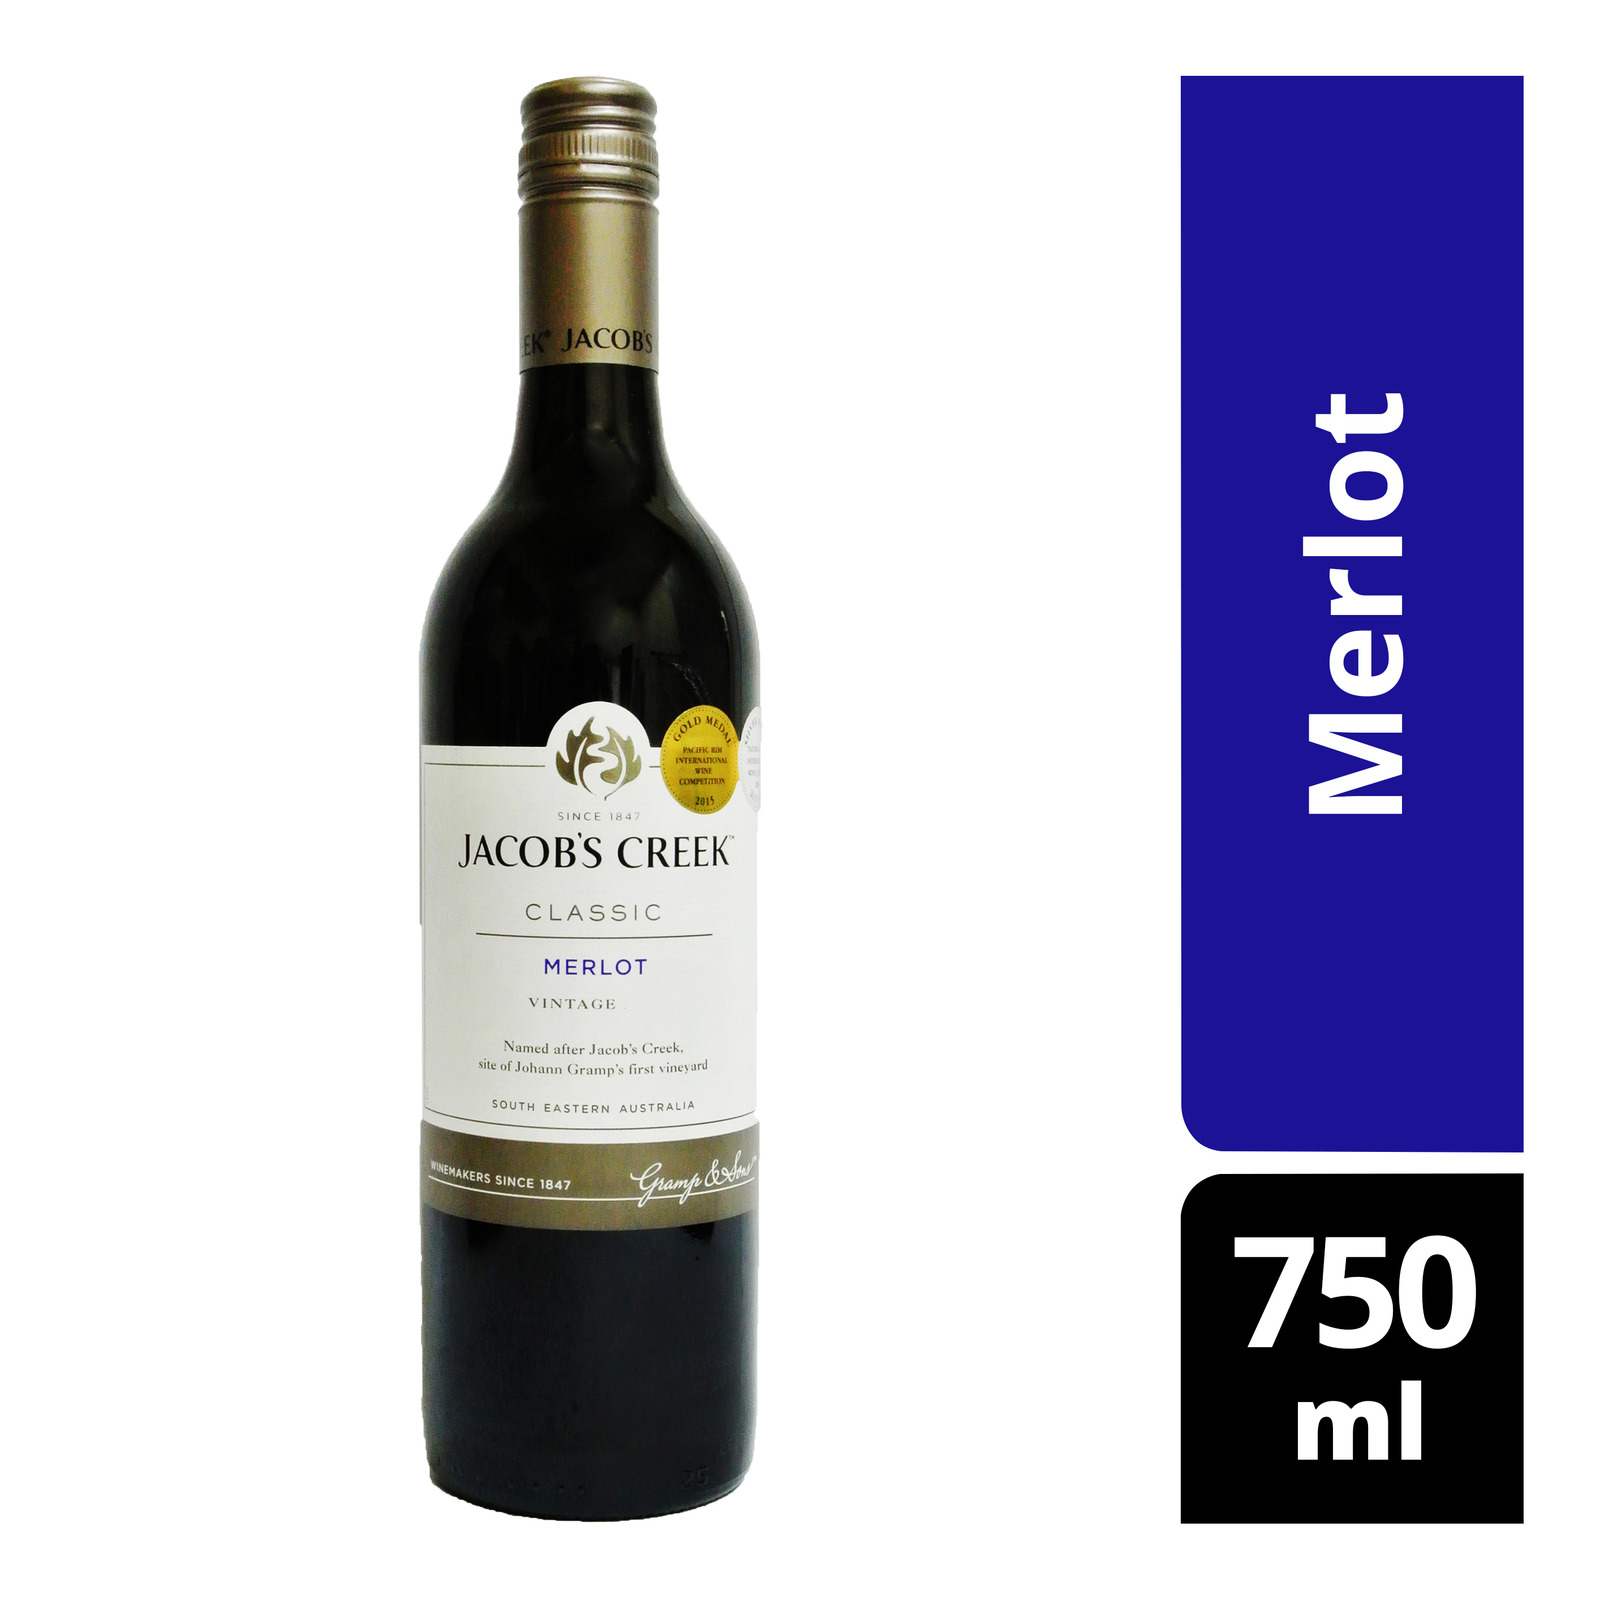 Jacob's Creek Classic Red Wine - Merlot